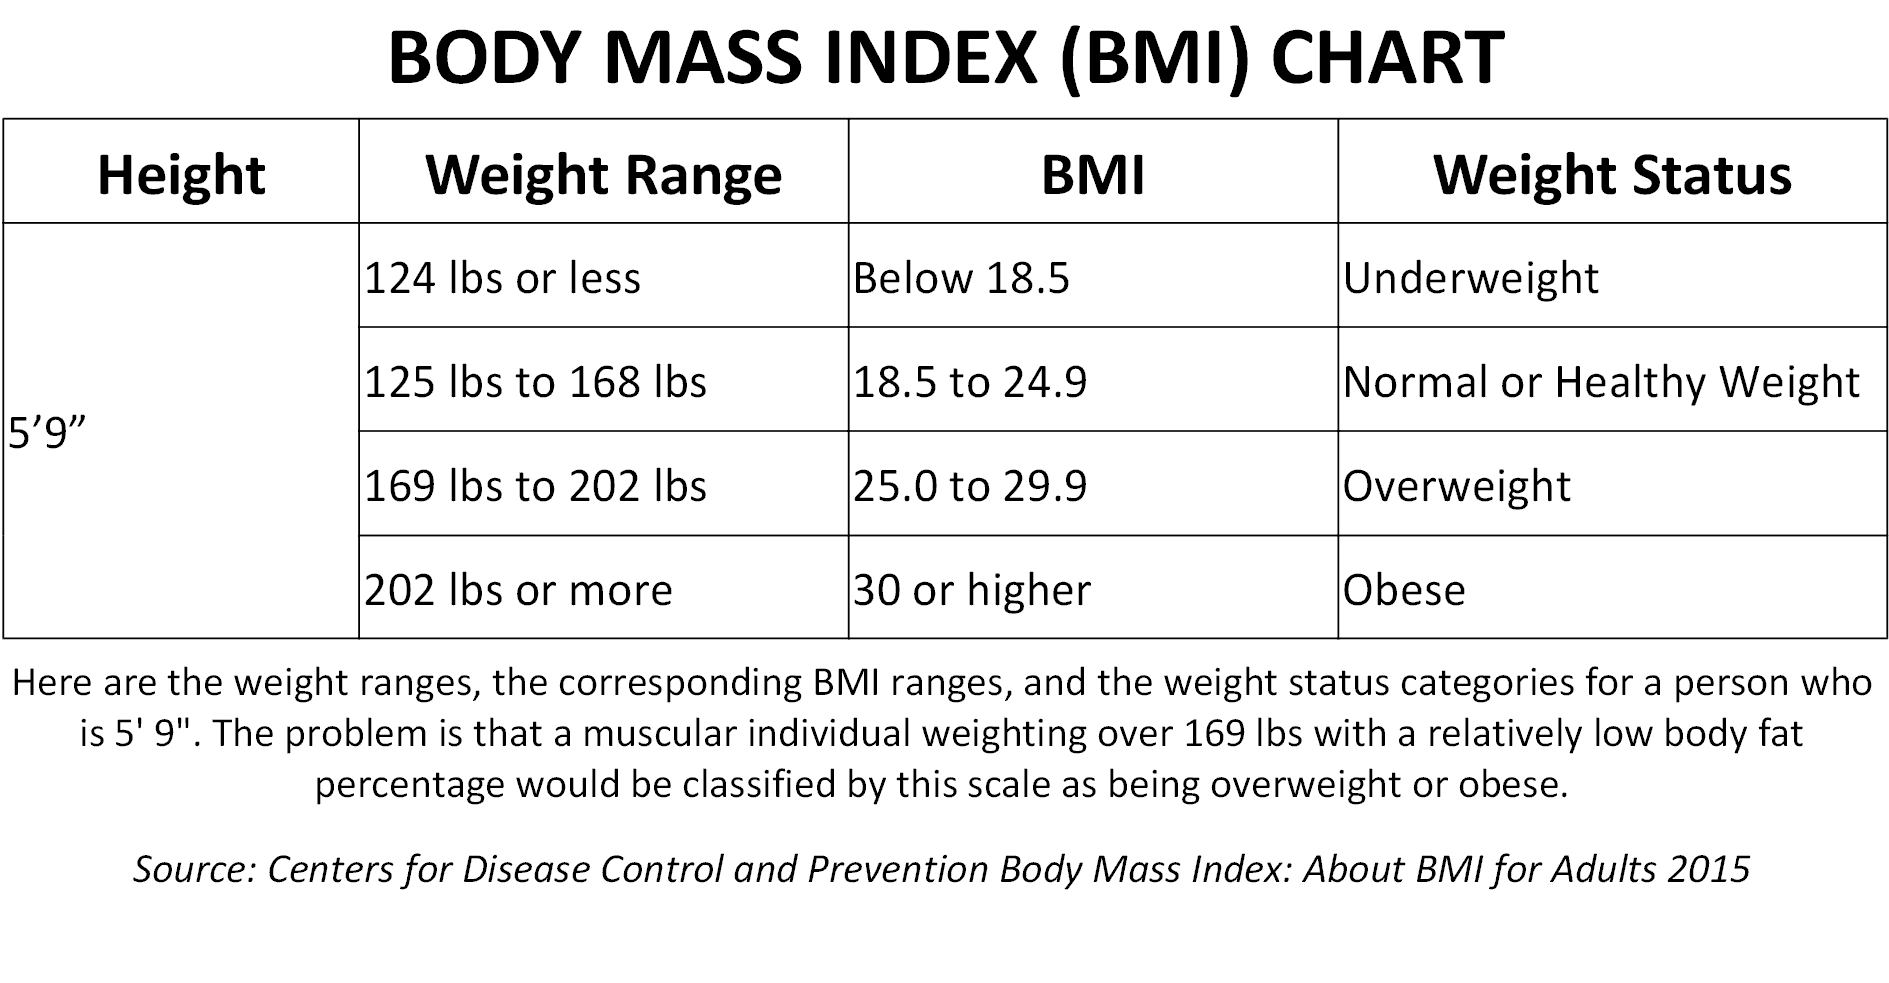 Fat body mass index